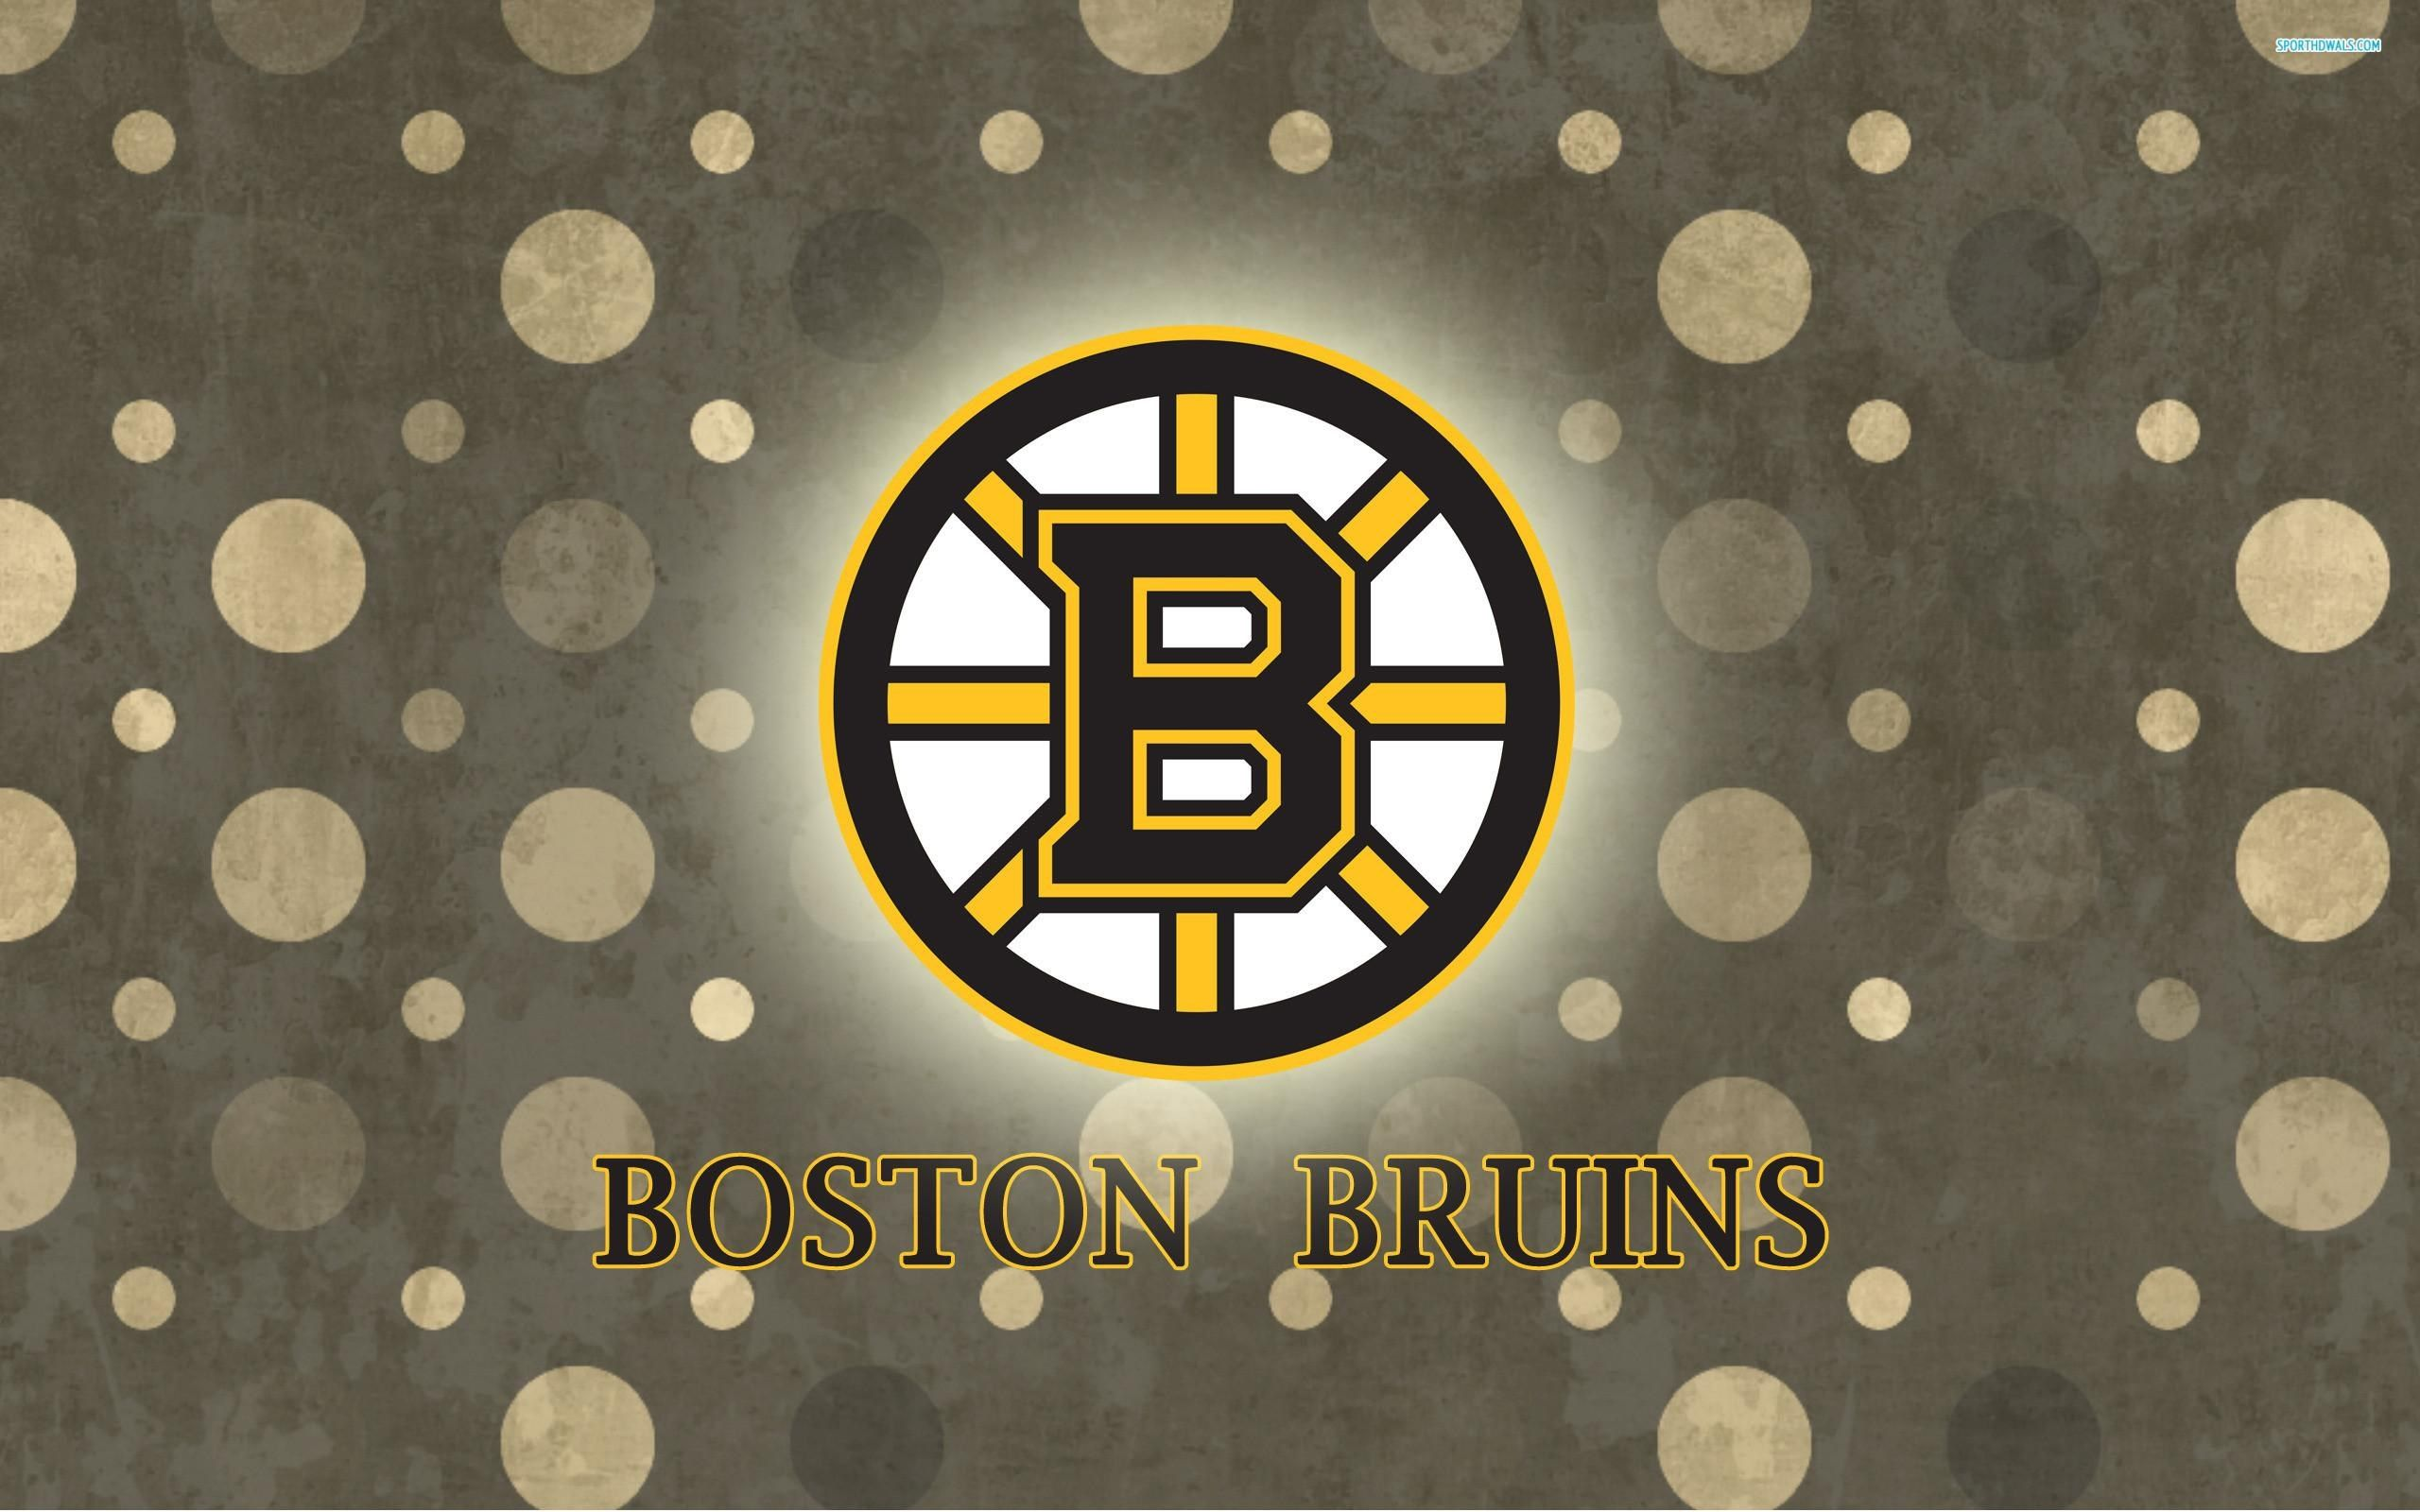 boston bruins logo hd background | bzwallpapers.xyz | Pinterest | Hd ...